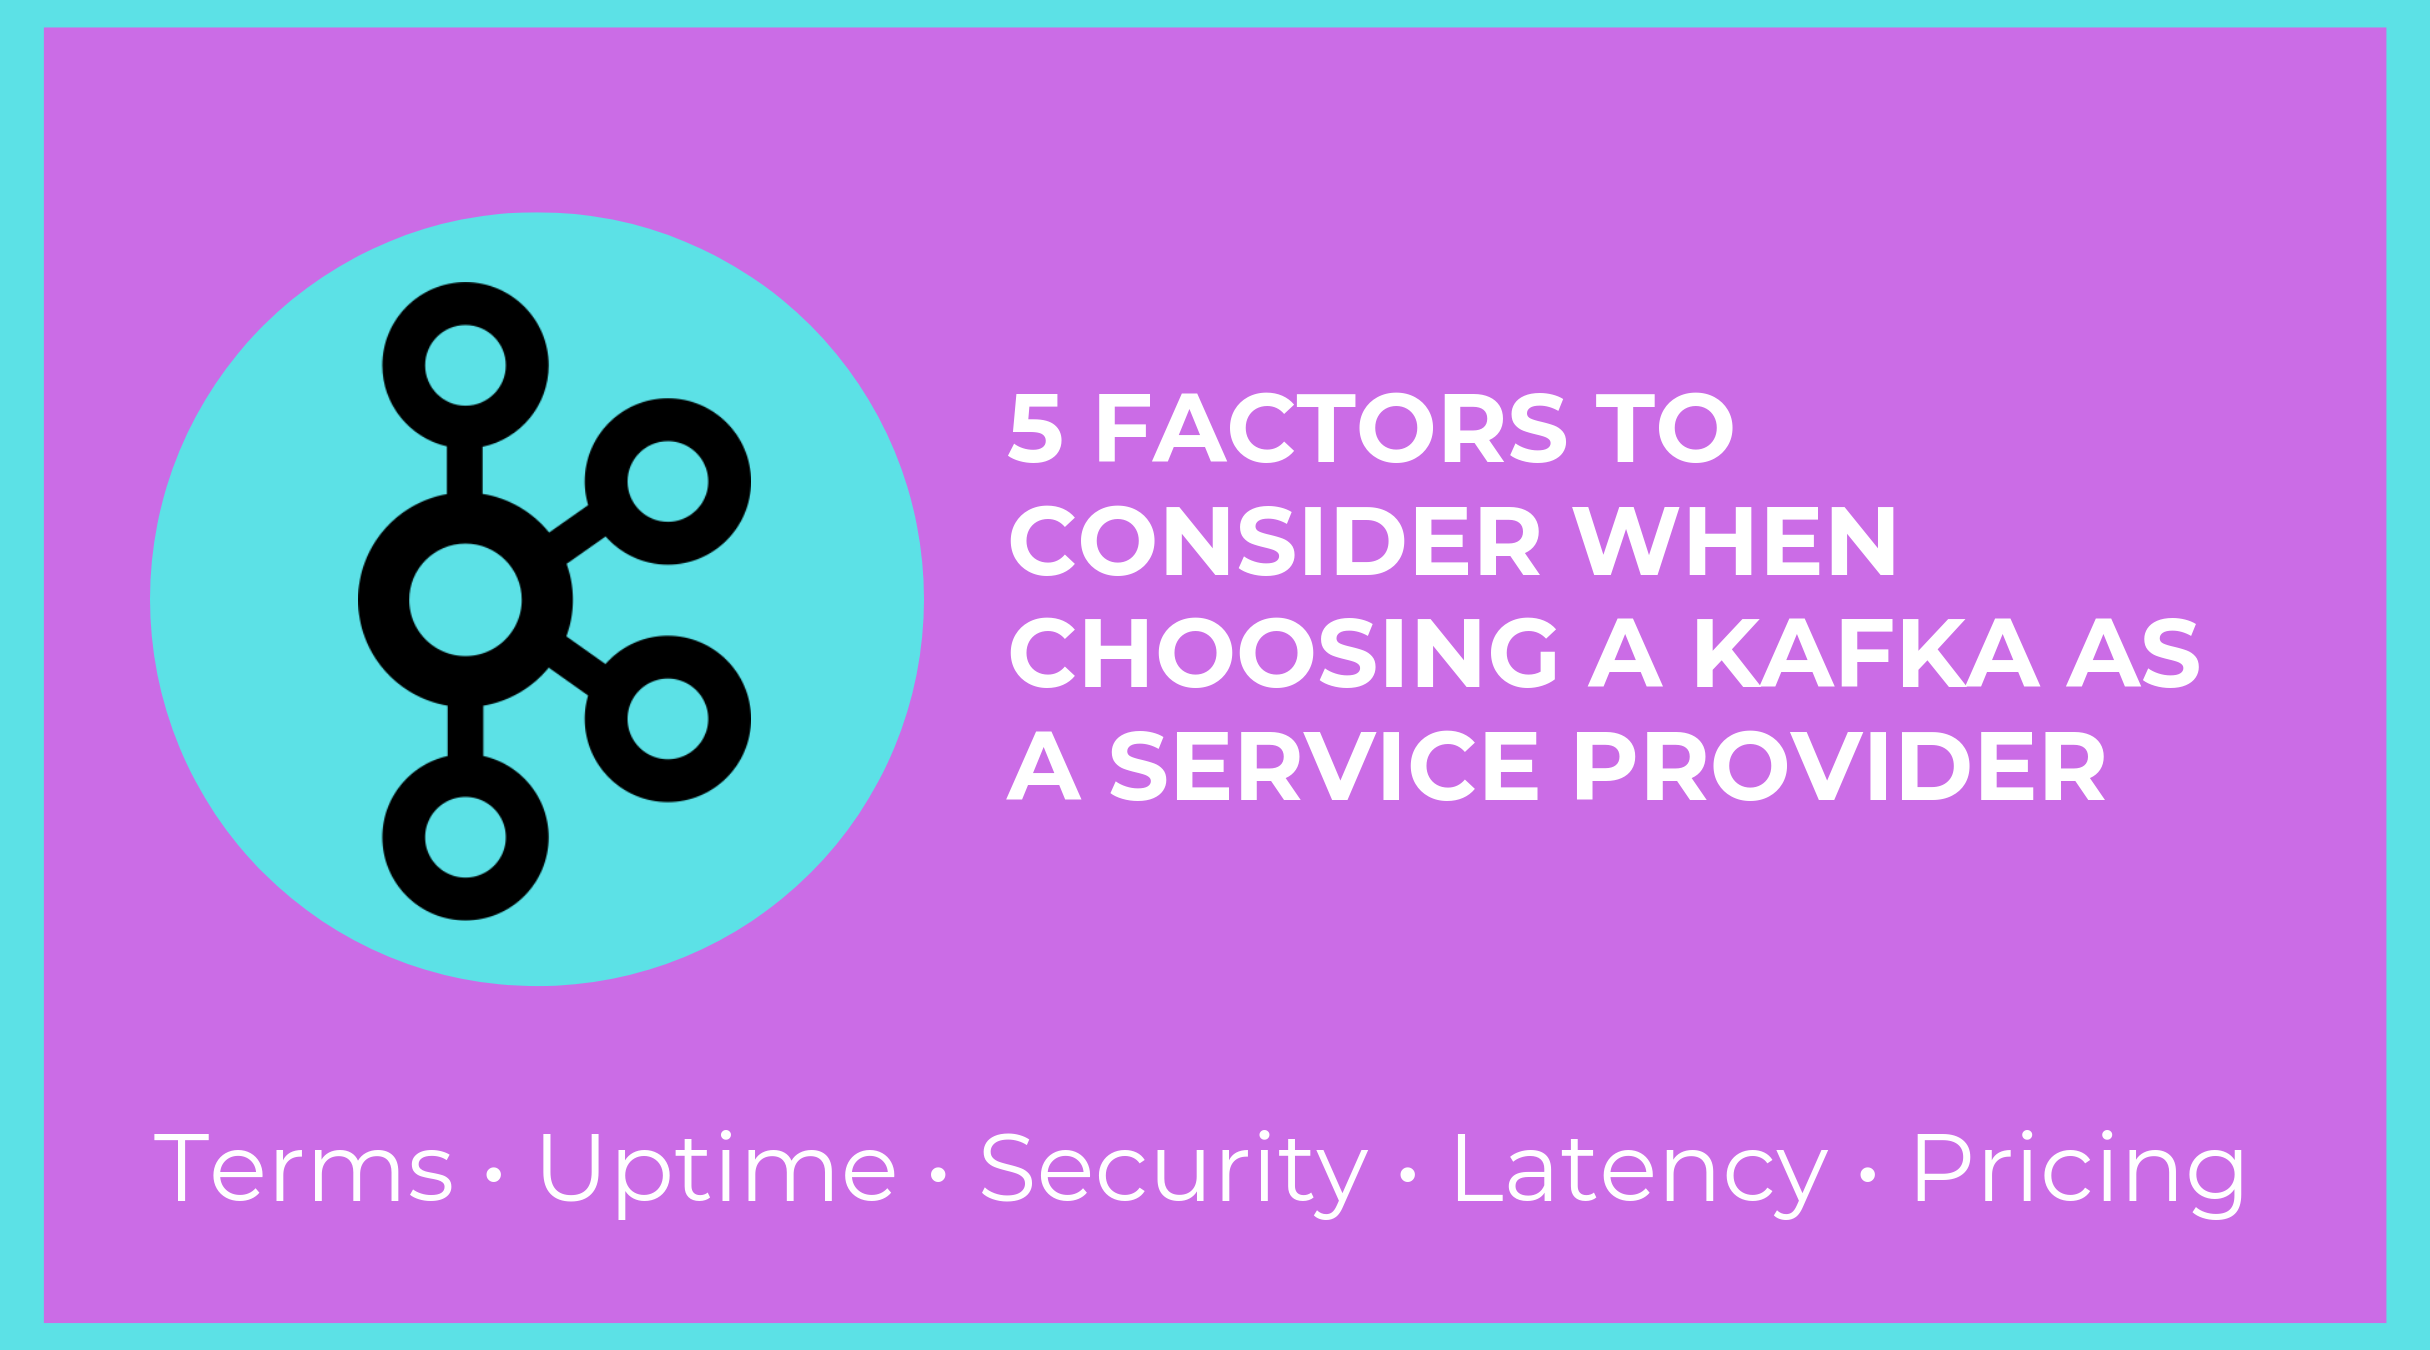 5 Factors to Consider When Choosing a Kafka as a Service Provider